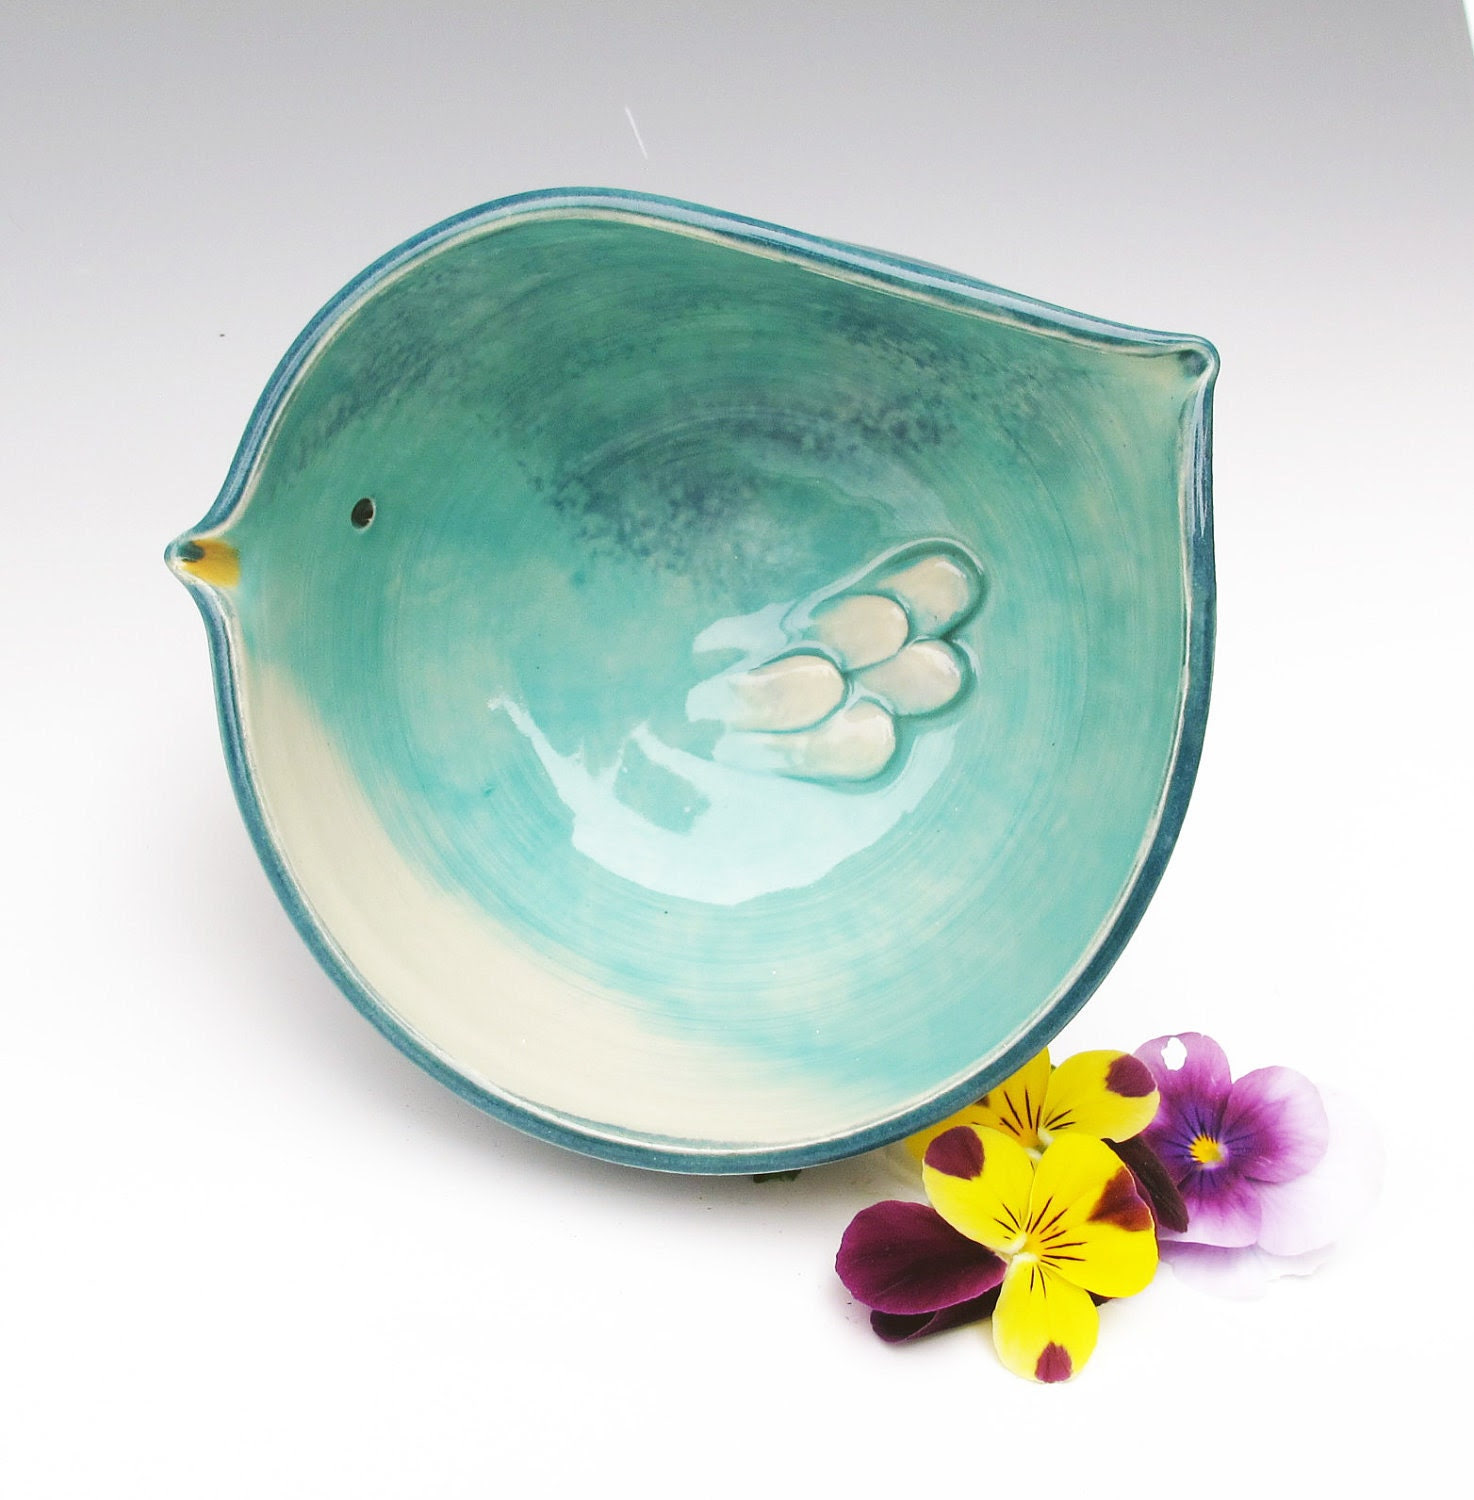 Bird shaped Bowl in Turquoise - Perfectly holds one cup